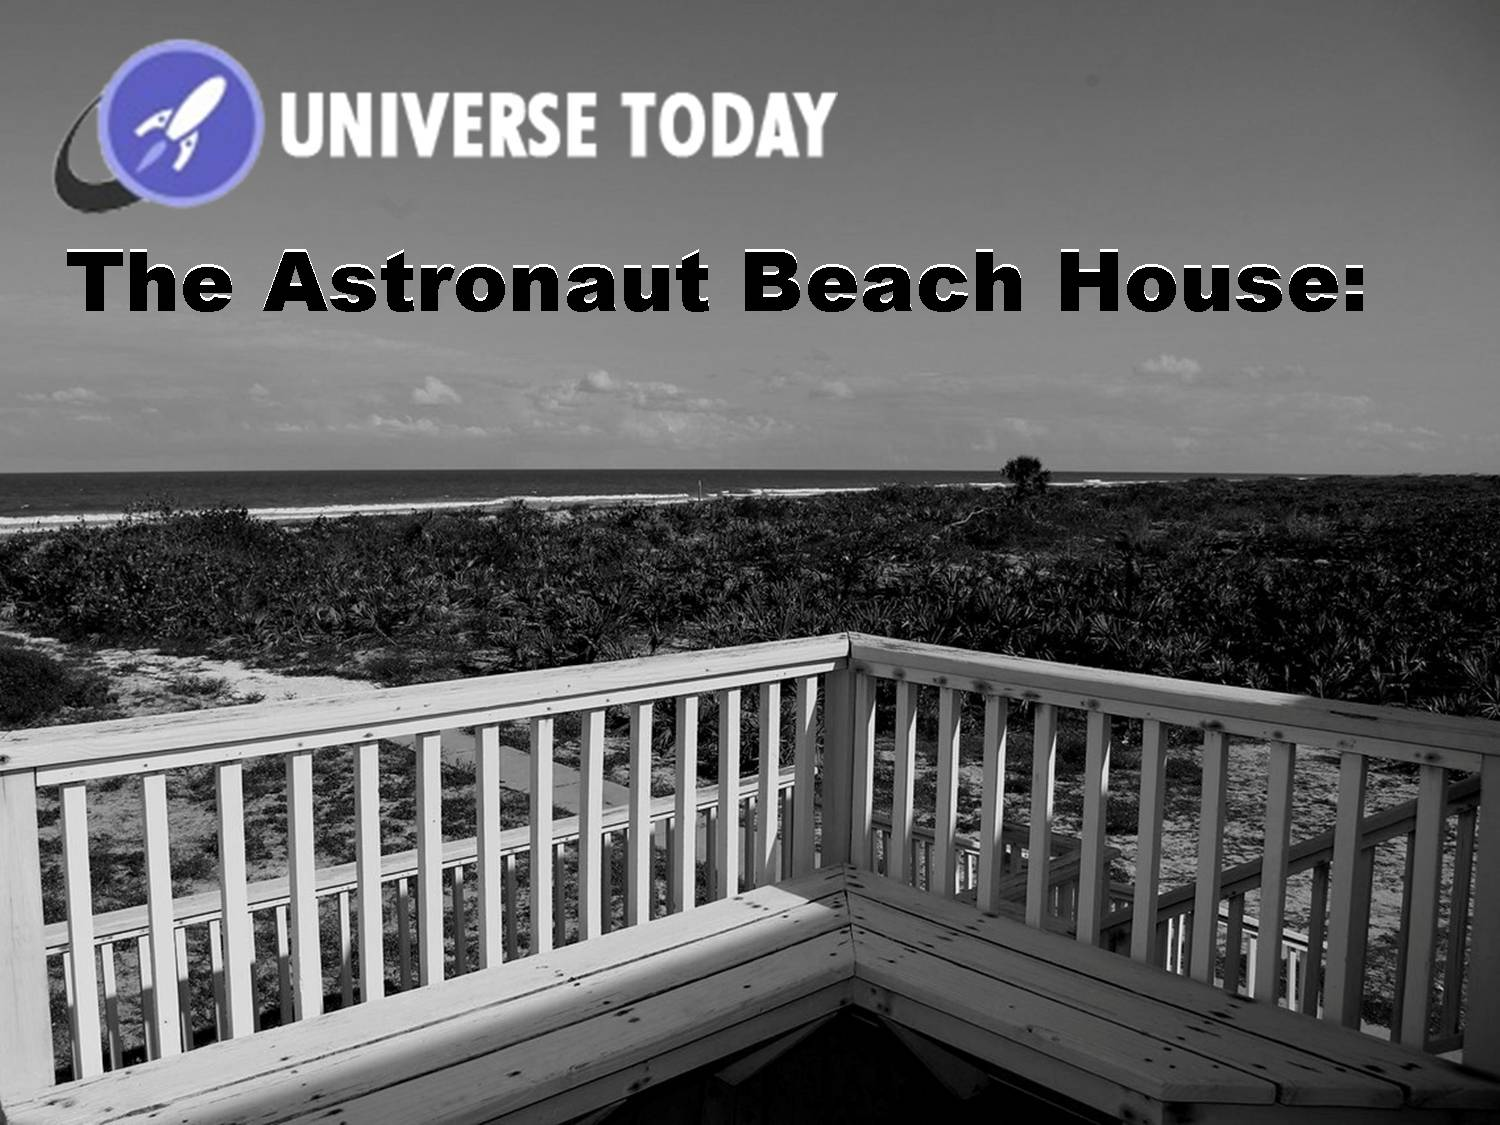 Surf, Sand & Space: The Astronaut Beach House